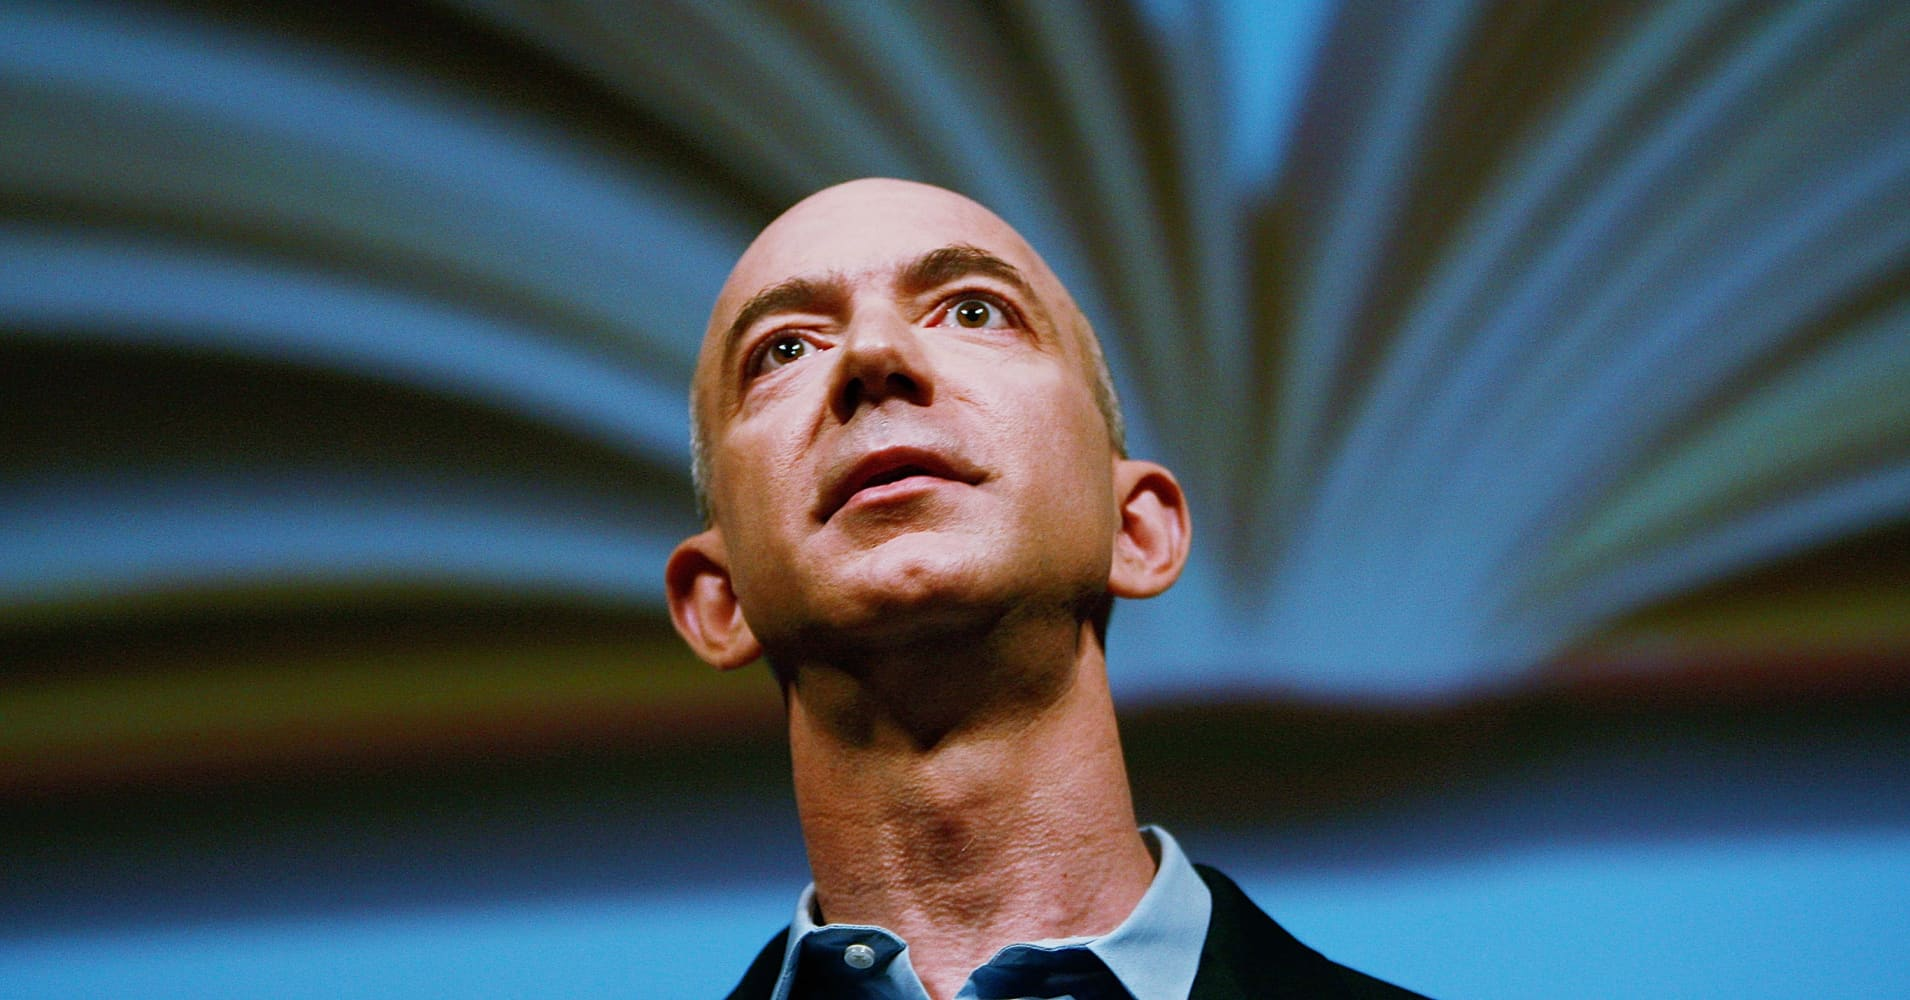 Wall Street says ignore Amazon's stunning earnings miss and trust in Bezos